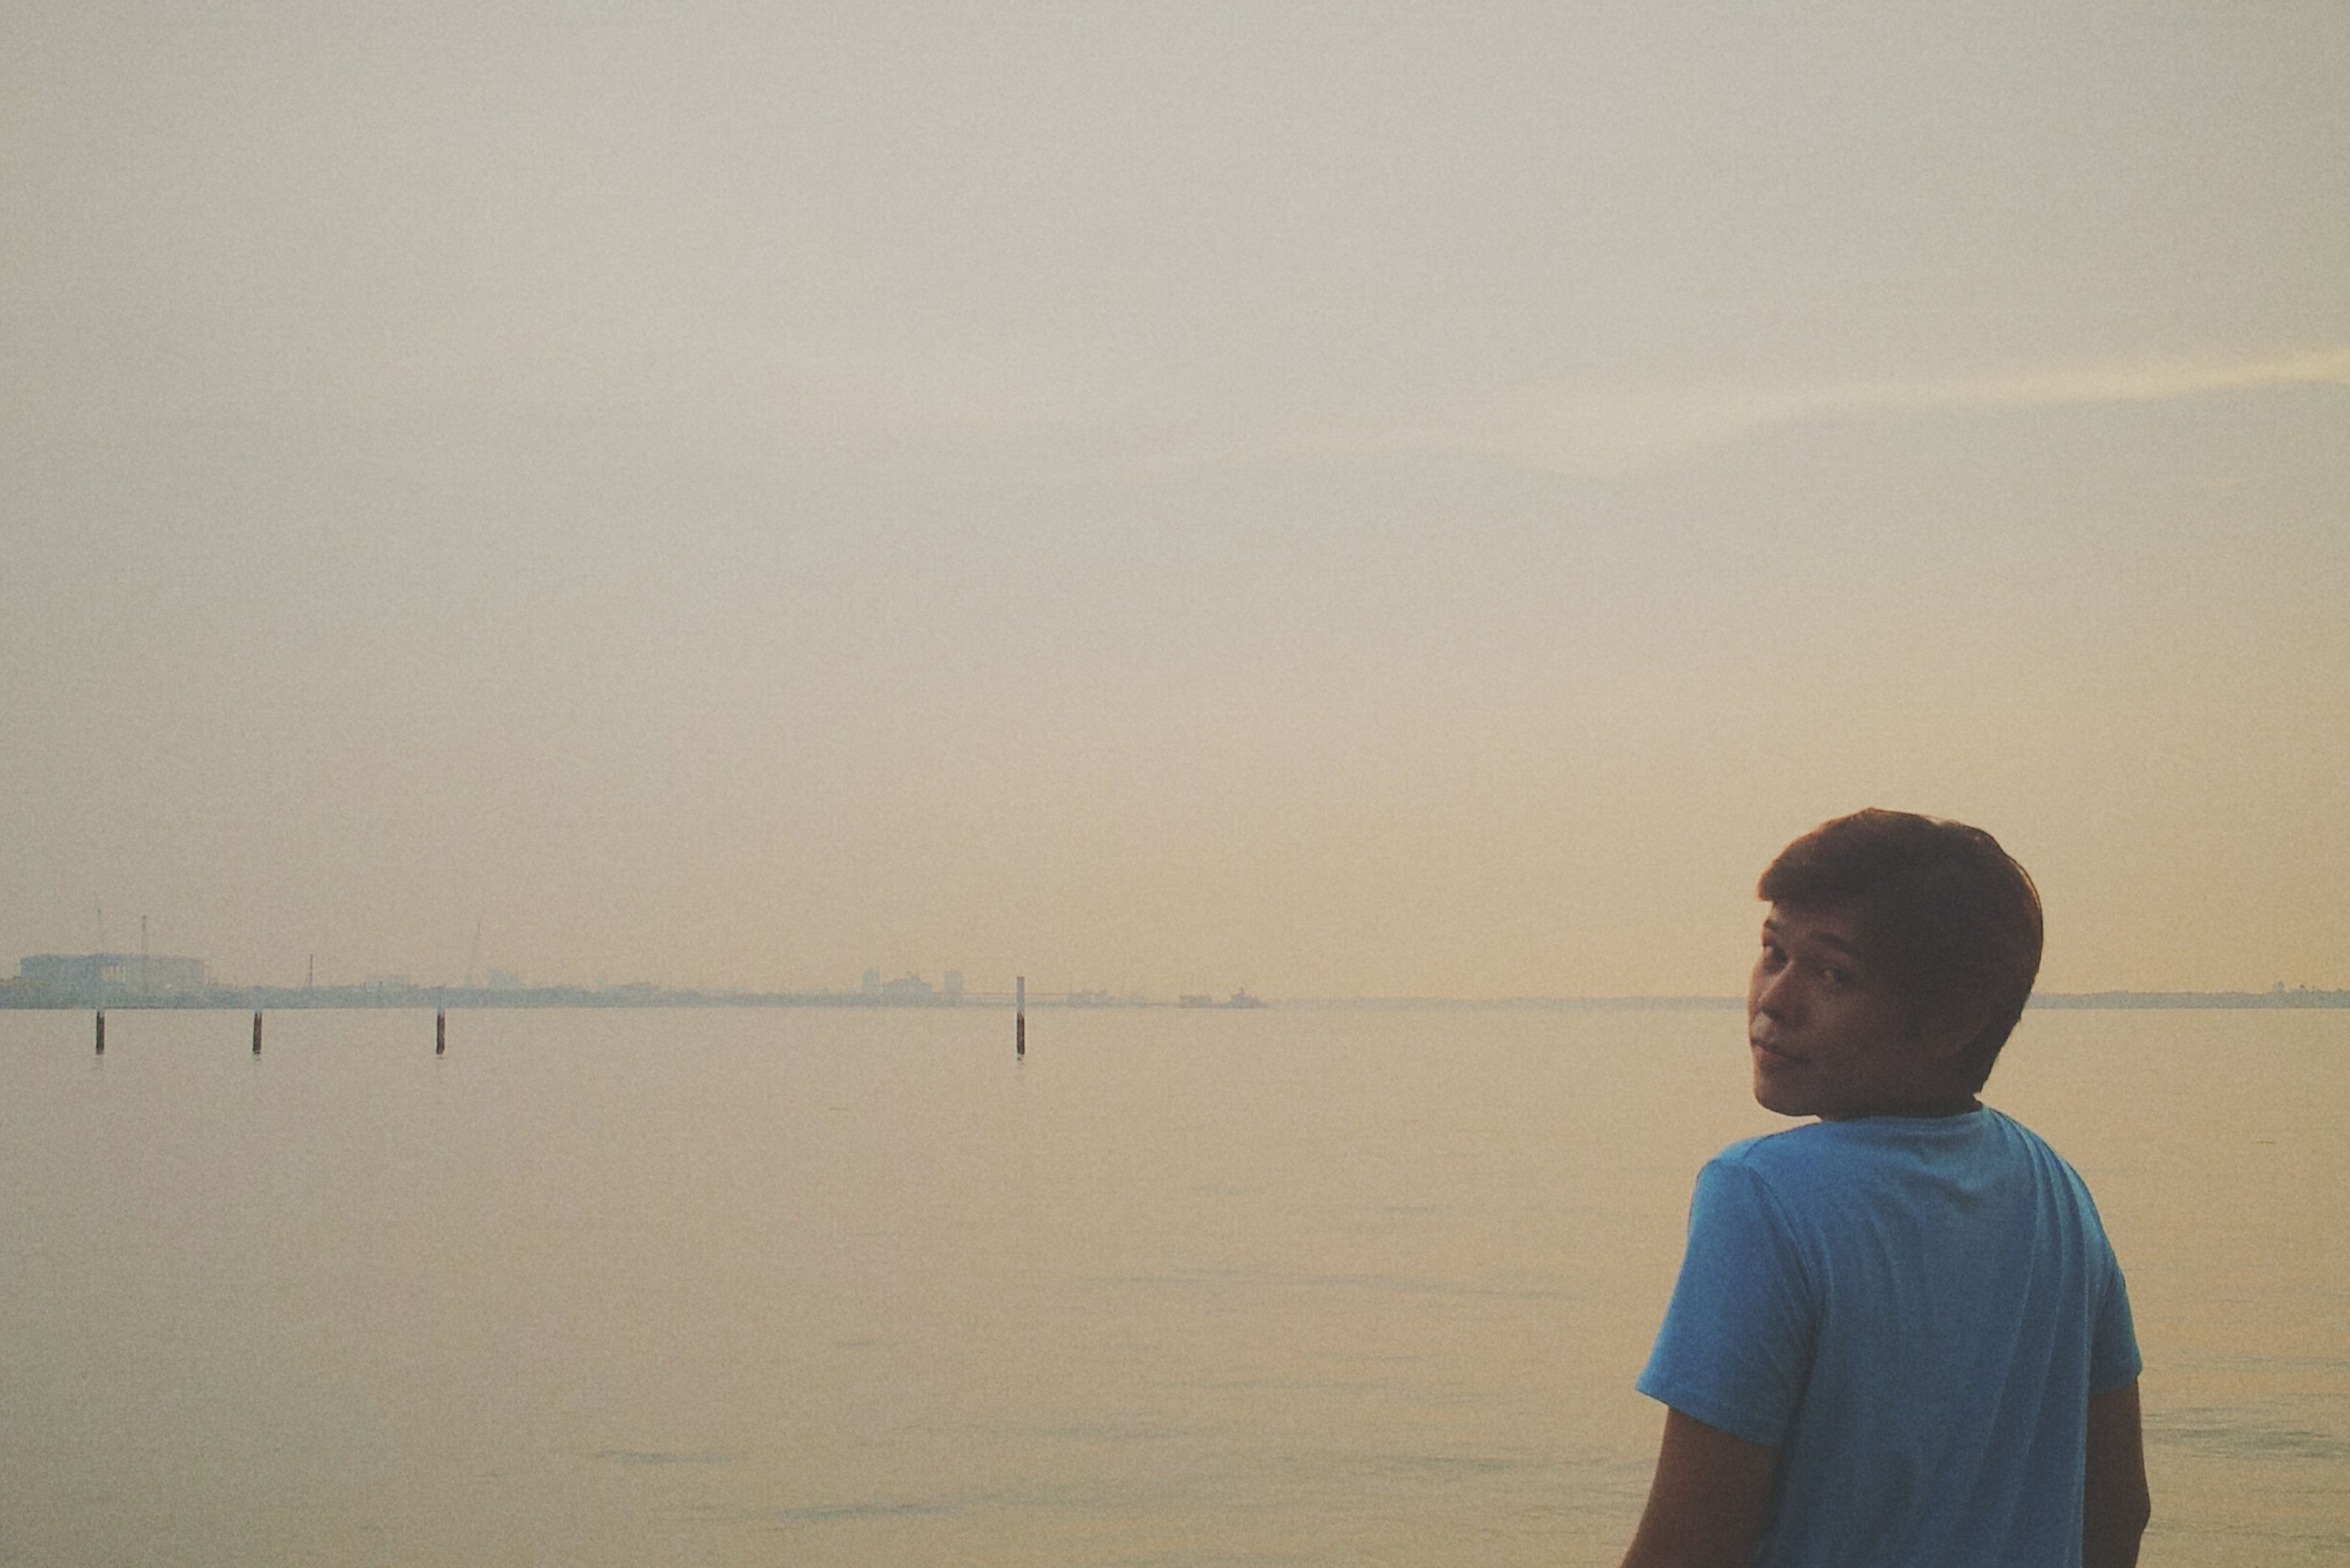 lifestyles, sea, copy space, water, leisure activity, beach, clear sky, rear view, standing, tranquility, tranquil scene, nature, casual clothing, men, scenics, horizon over water, shore, beauty in nature